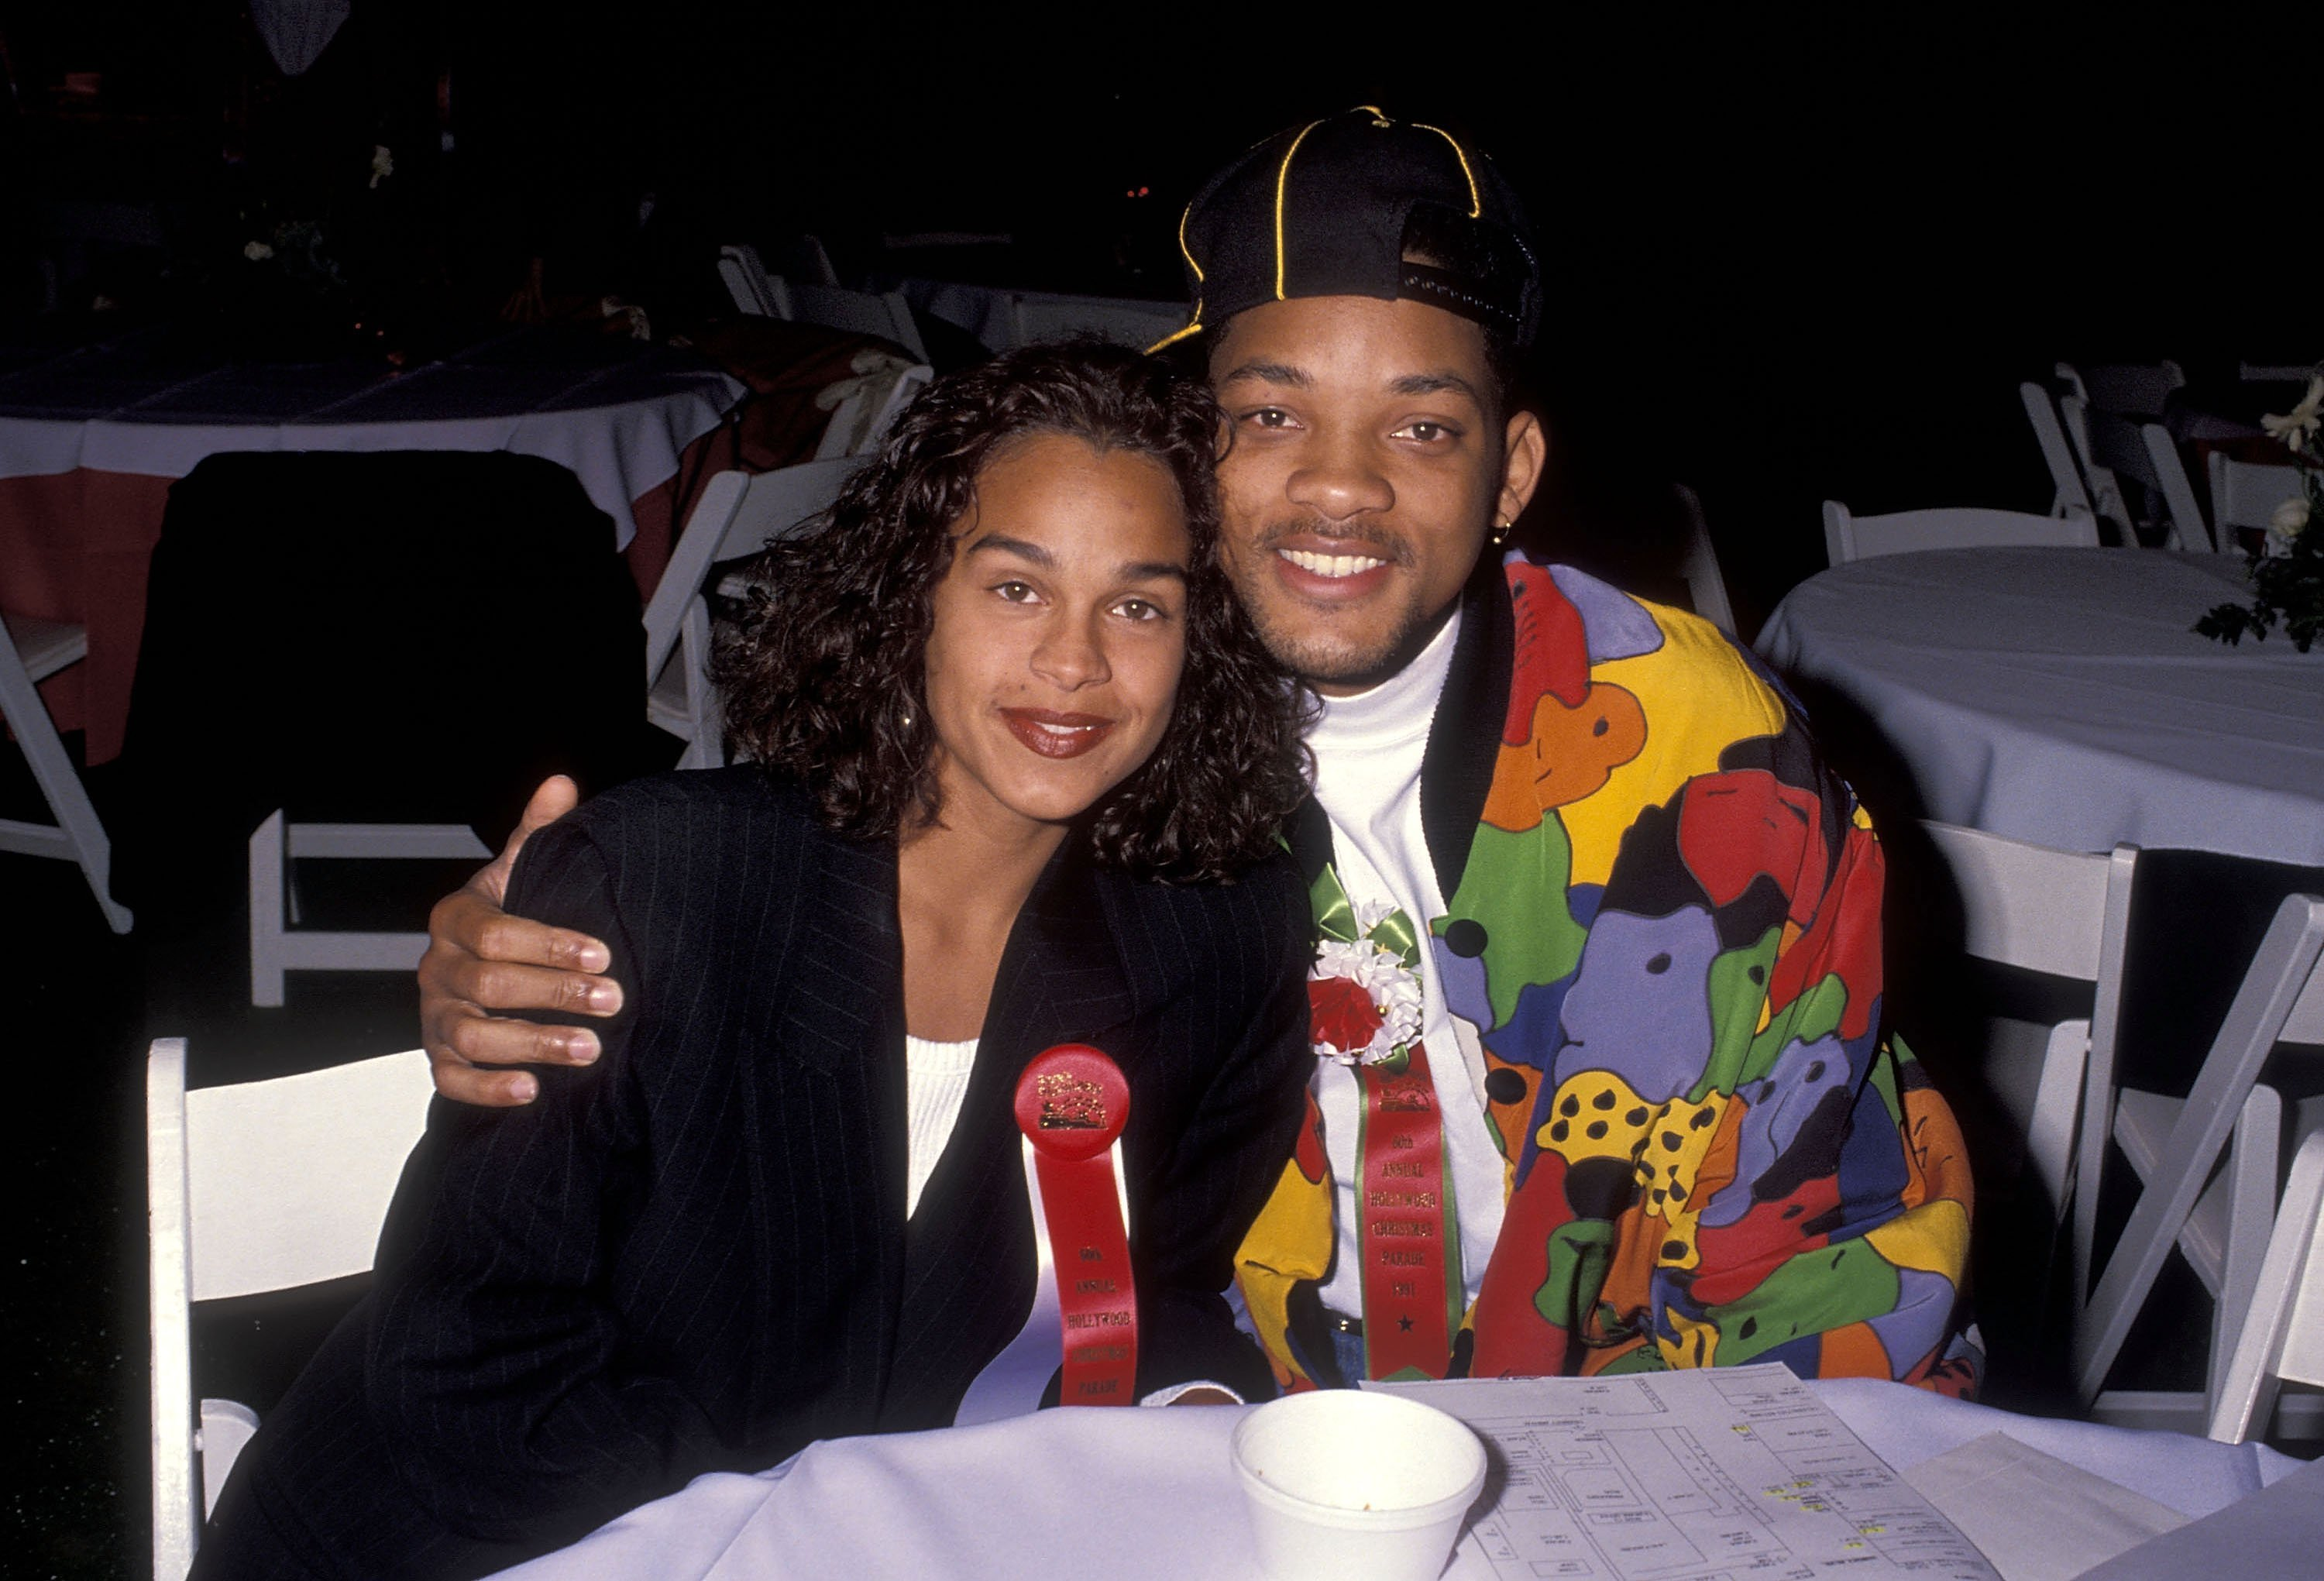 Will Smith and Sheree Zampino on December 1, 1991 in Hollywood, California. | Photo: Getty Images